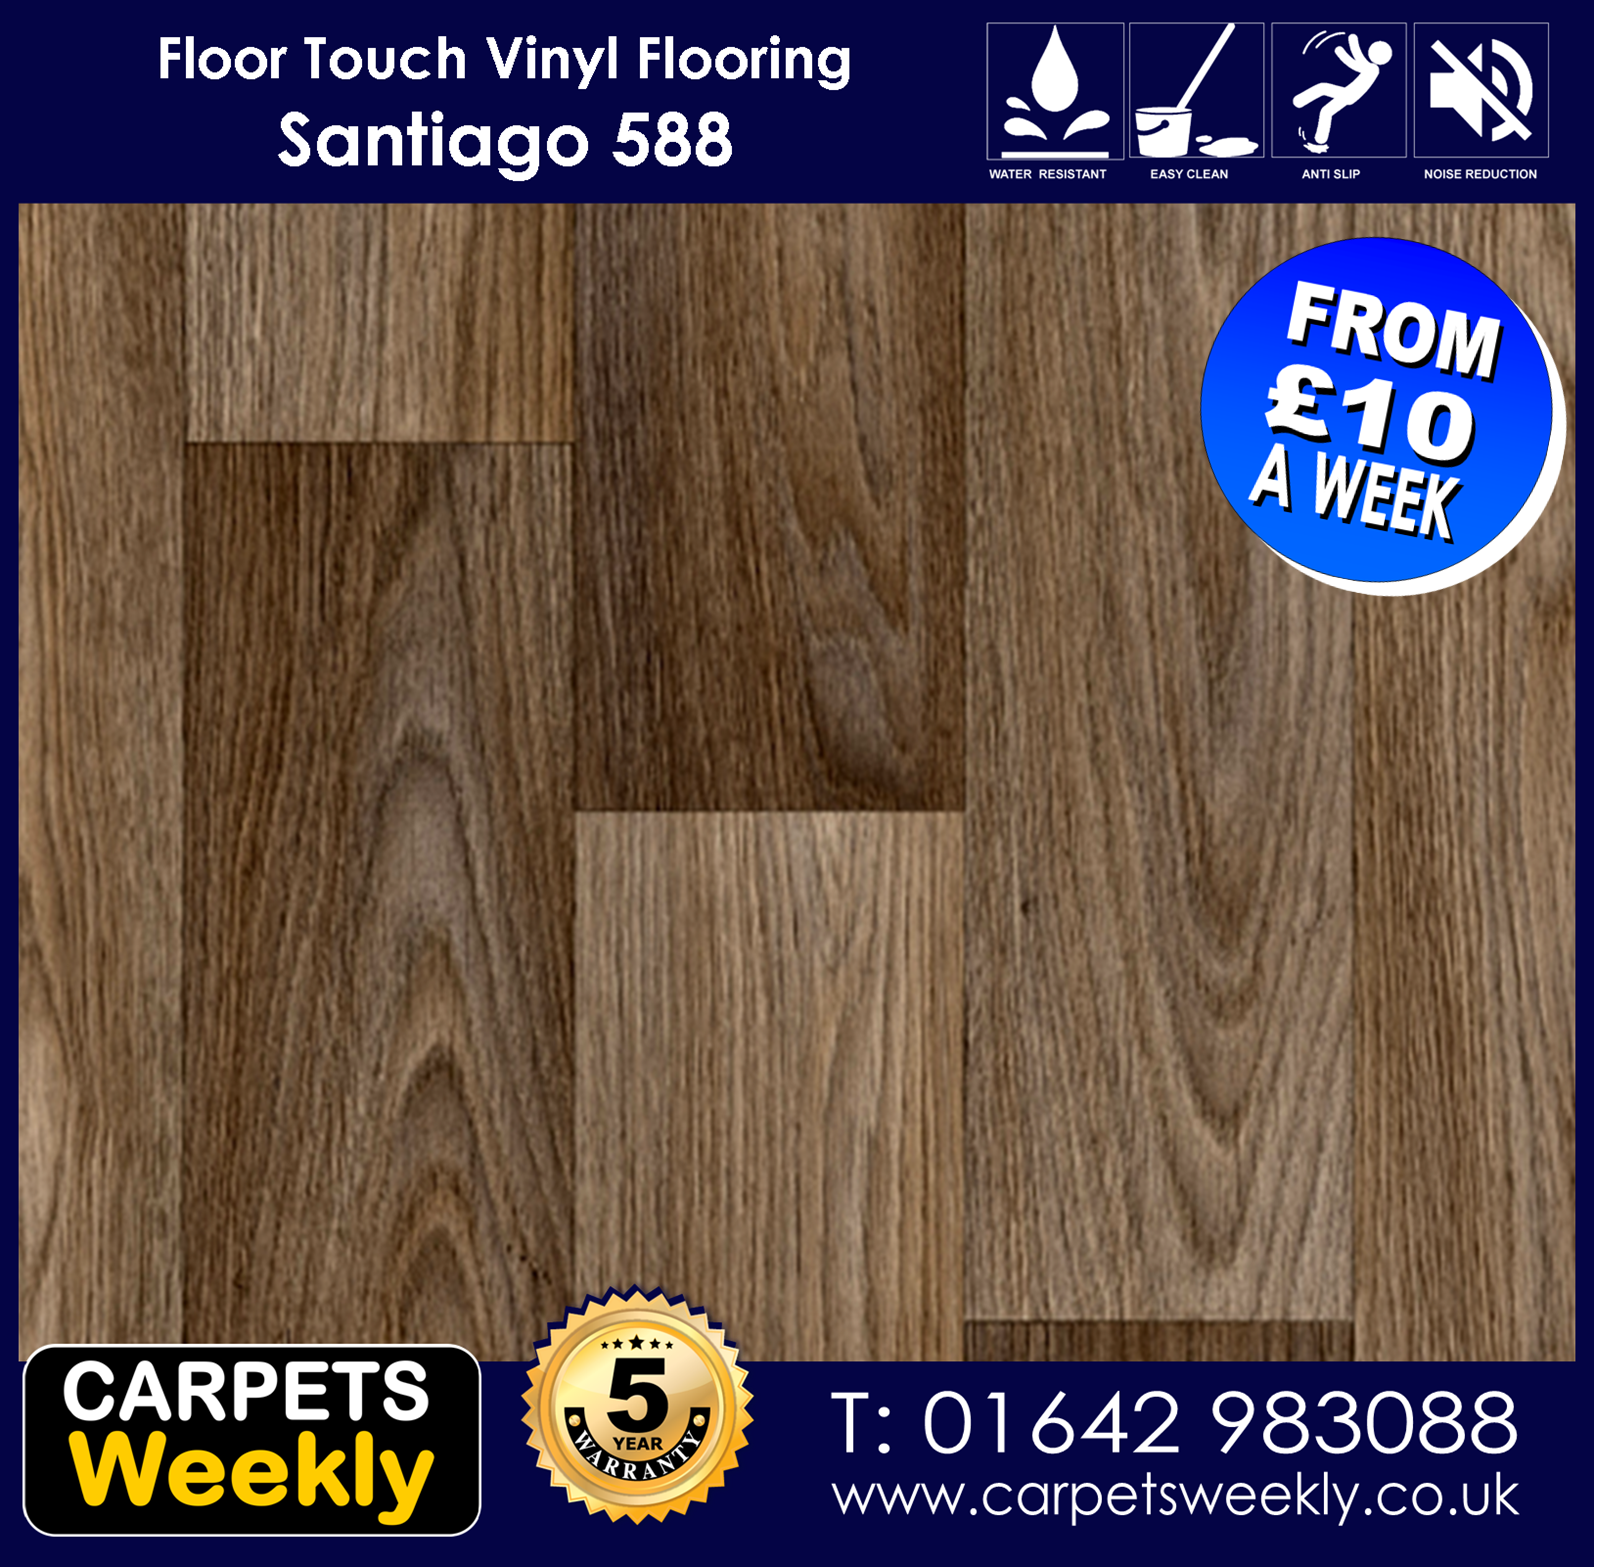 Santiago 588 Vinyl Flooring by Floor Touch from Carpets Weekly